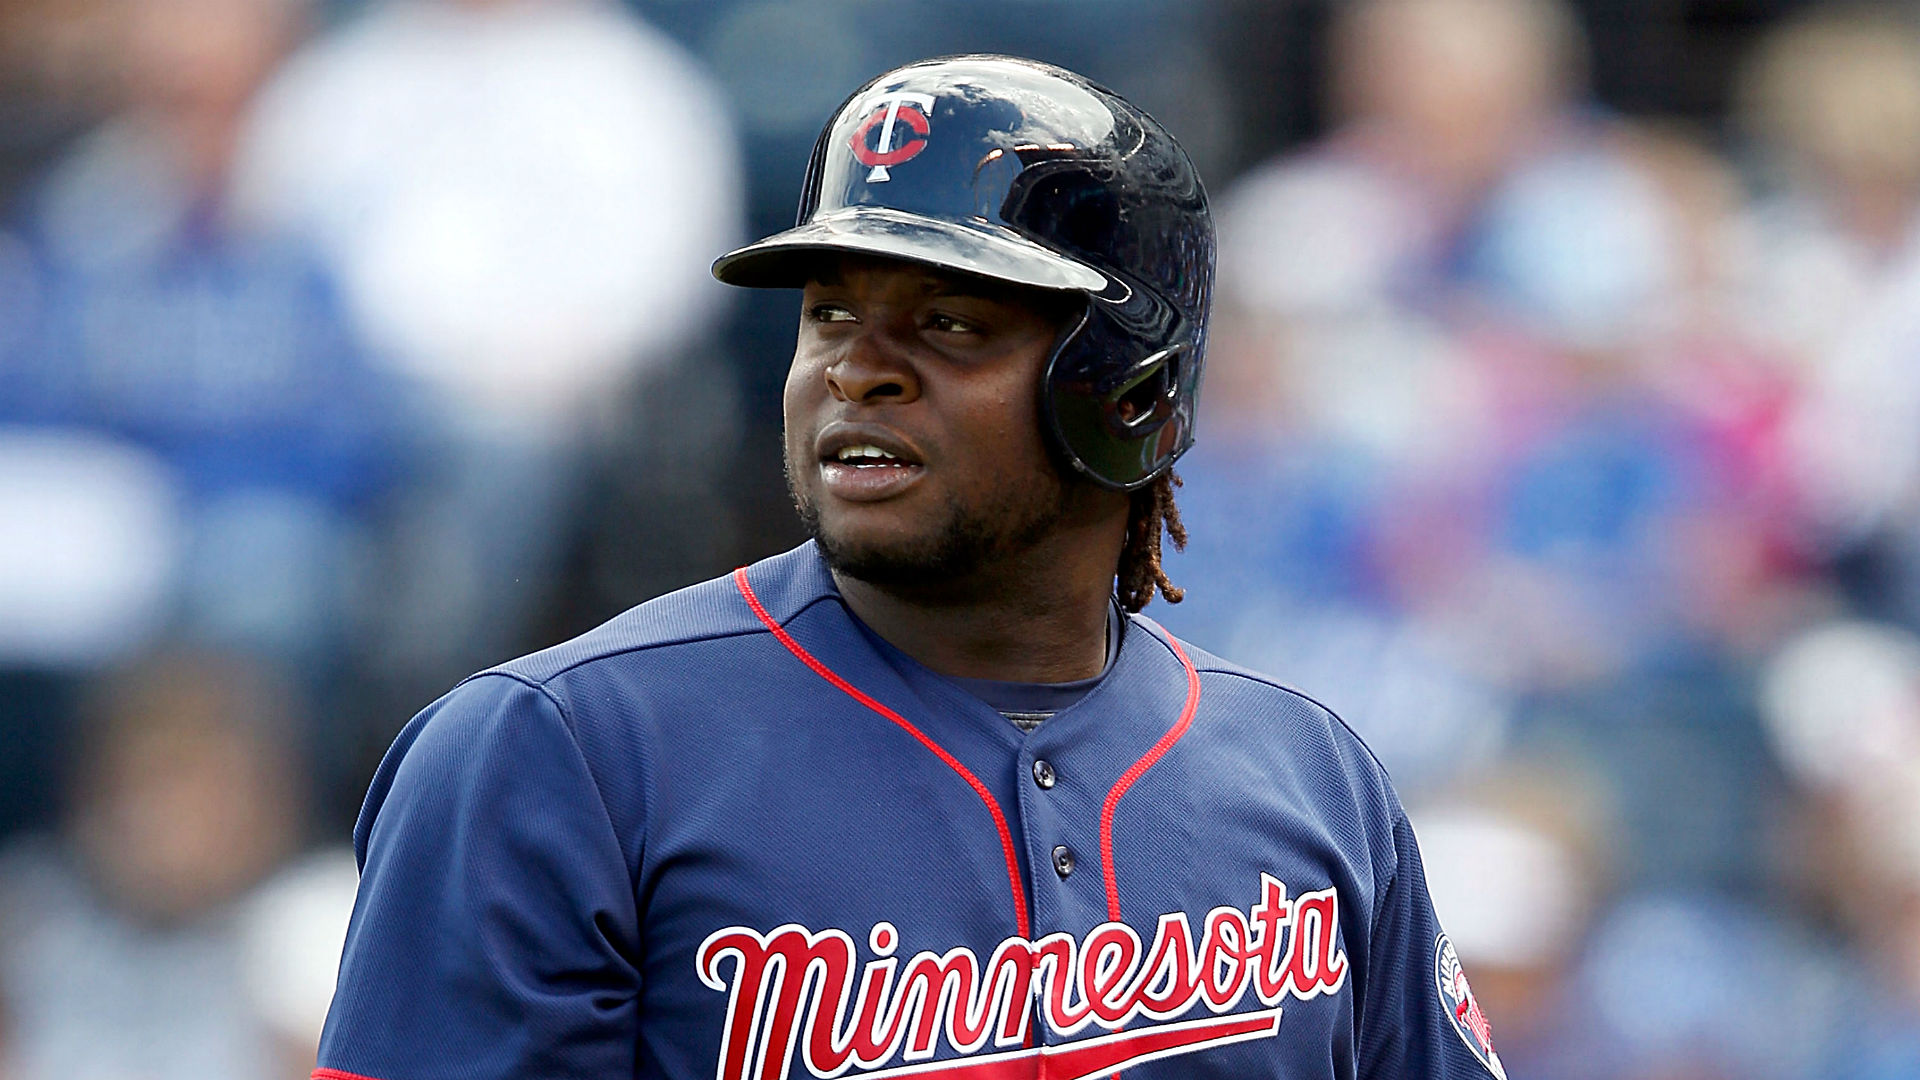 Twins leave slugger Miguel Sano off AL wild-card game roster